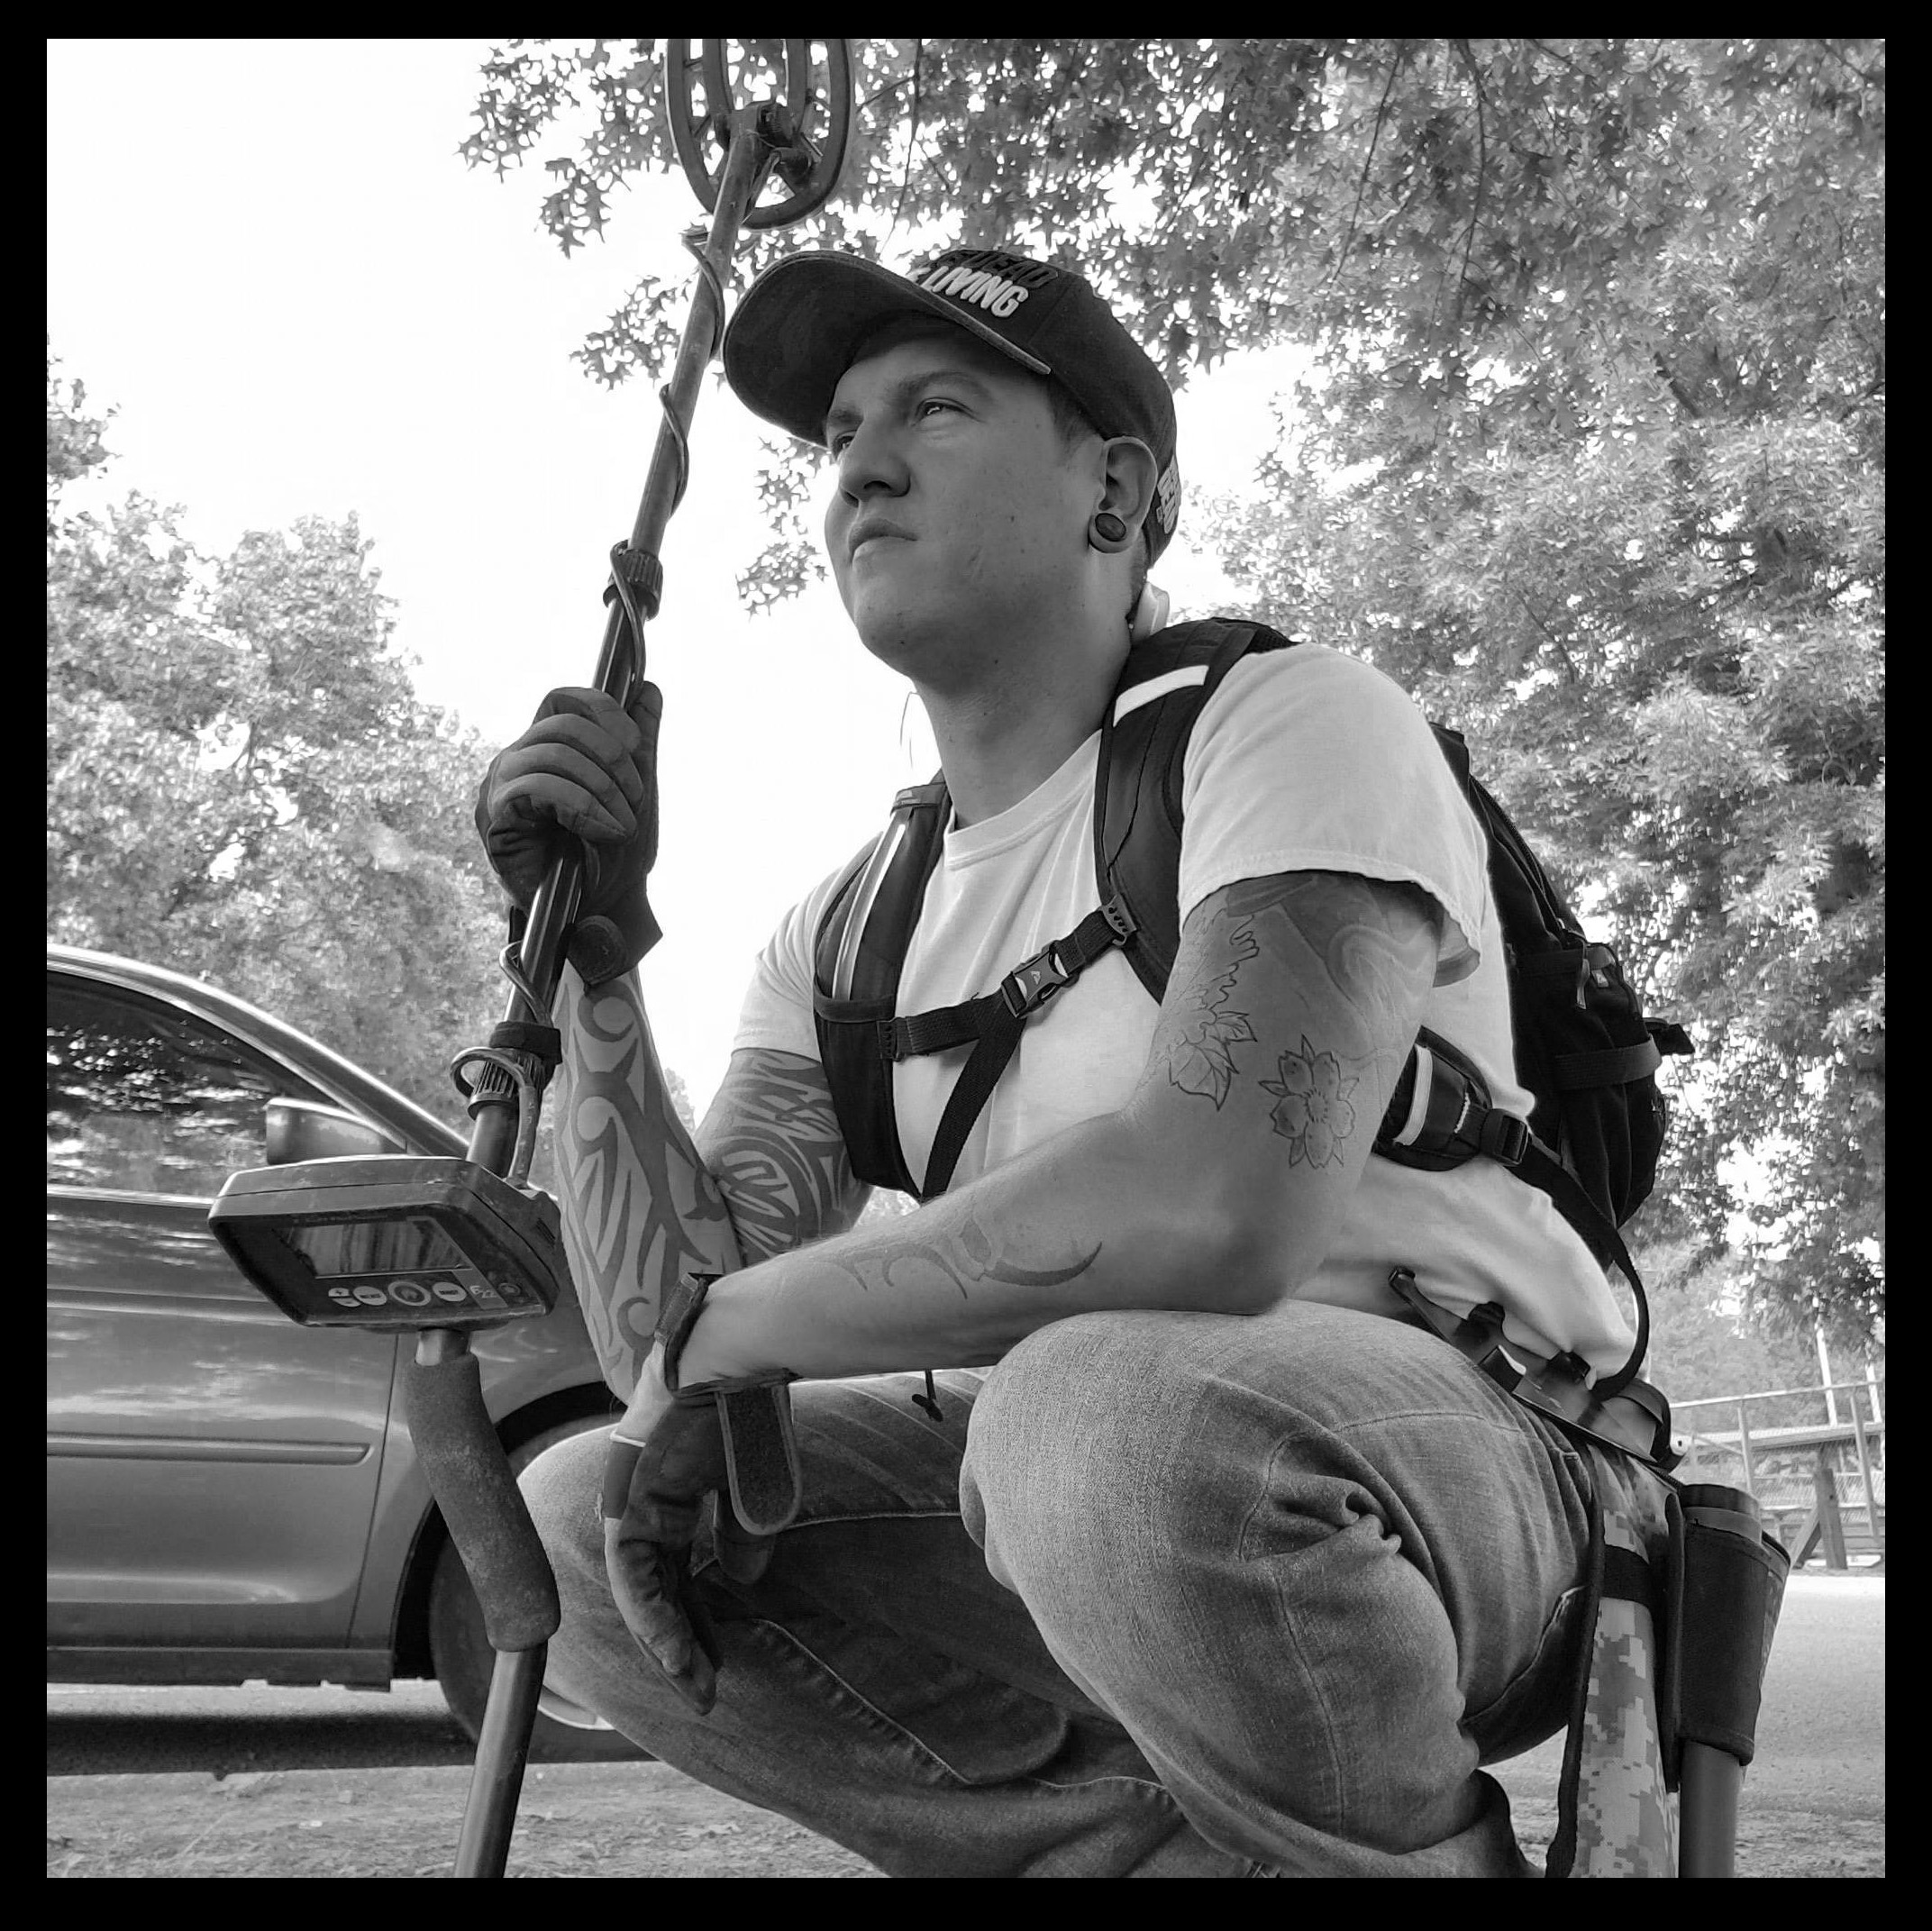 Tennessee Adventures Matt Ryan Holding Fisher Metal Detector with Trees and A Car in the Background all in Black and White